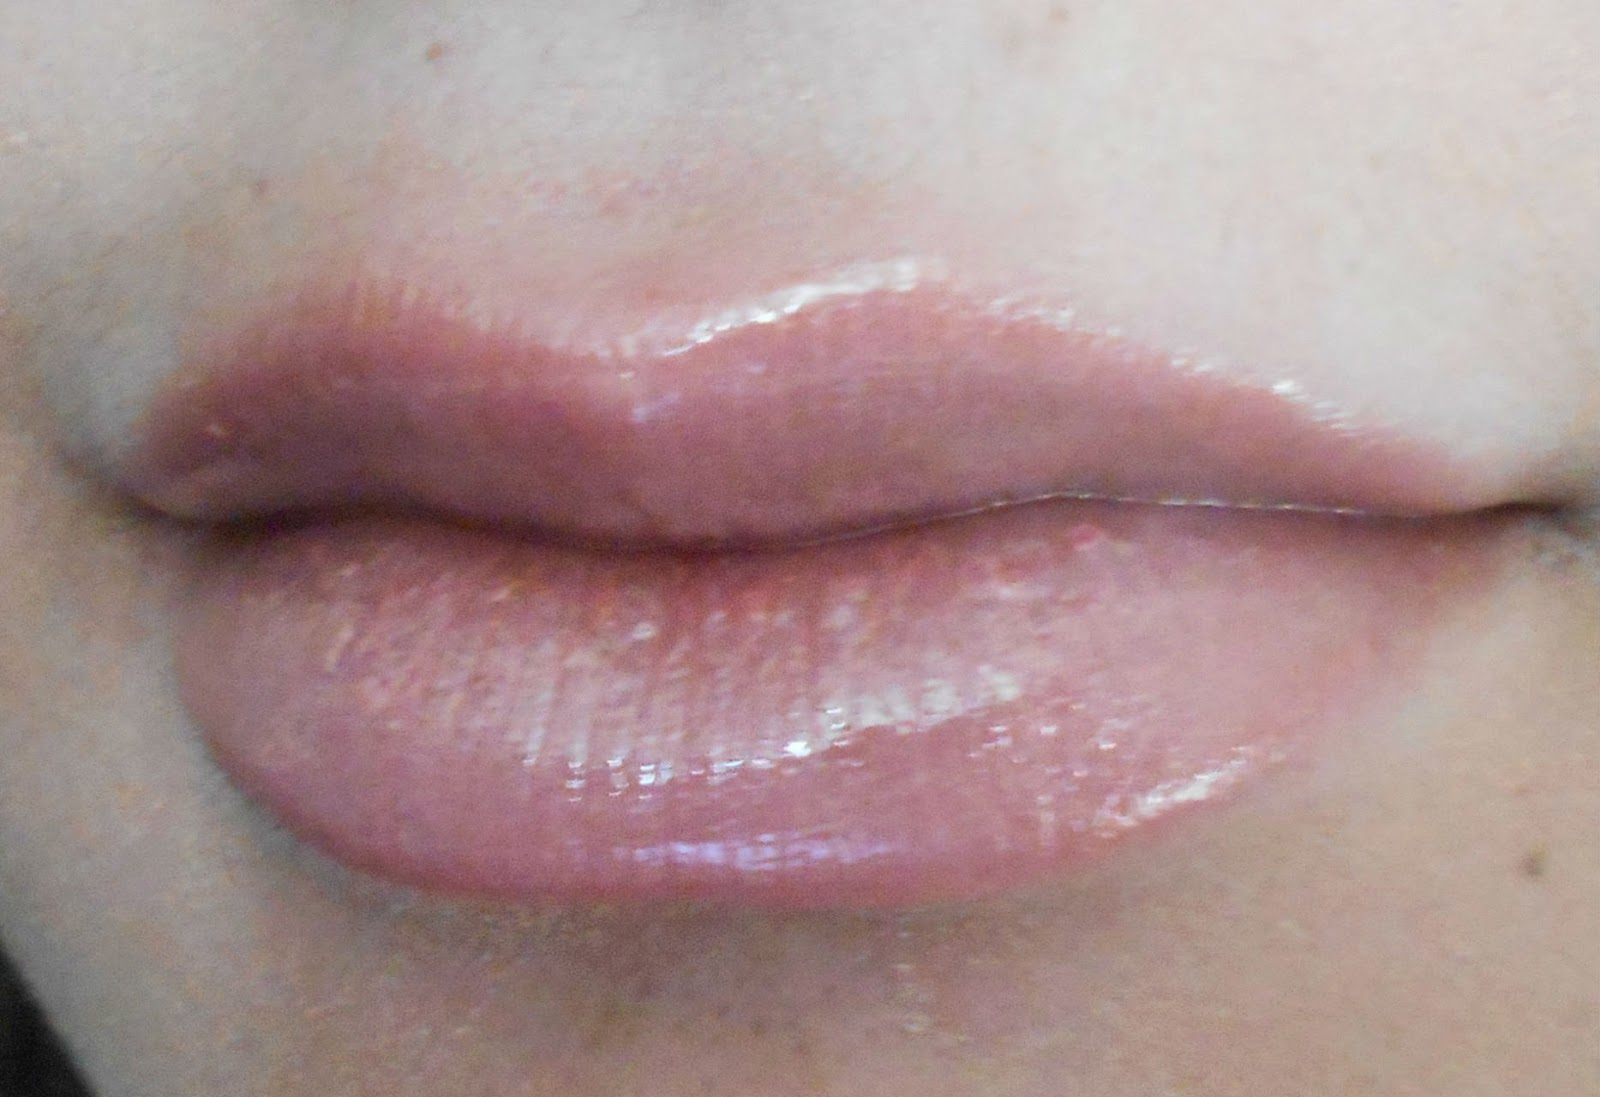 Covergirl Colorlicious Lipgloss in Melted Toffee